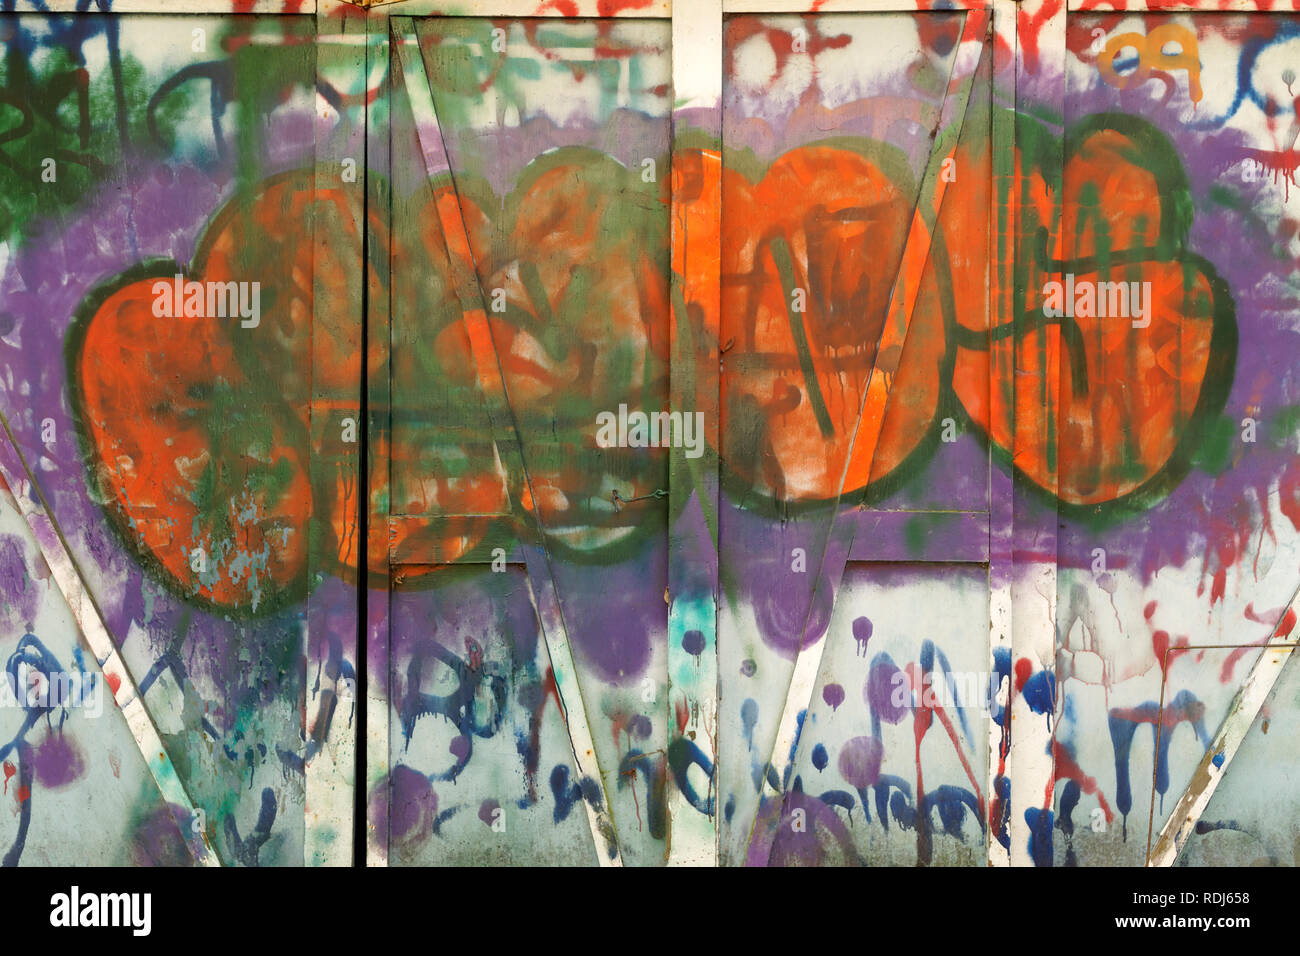 Wooden wall painted with lively colorful tags and other urban graffiti, abstract design - Stock Image